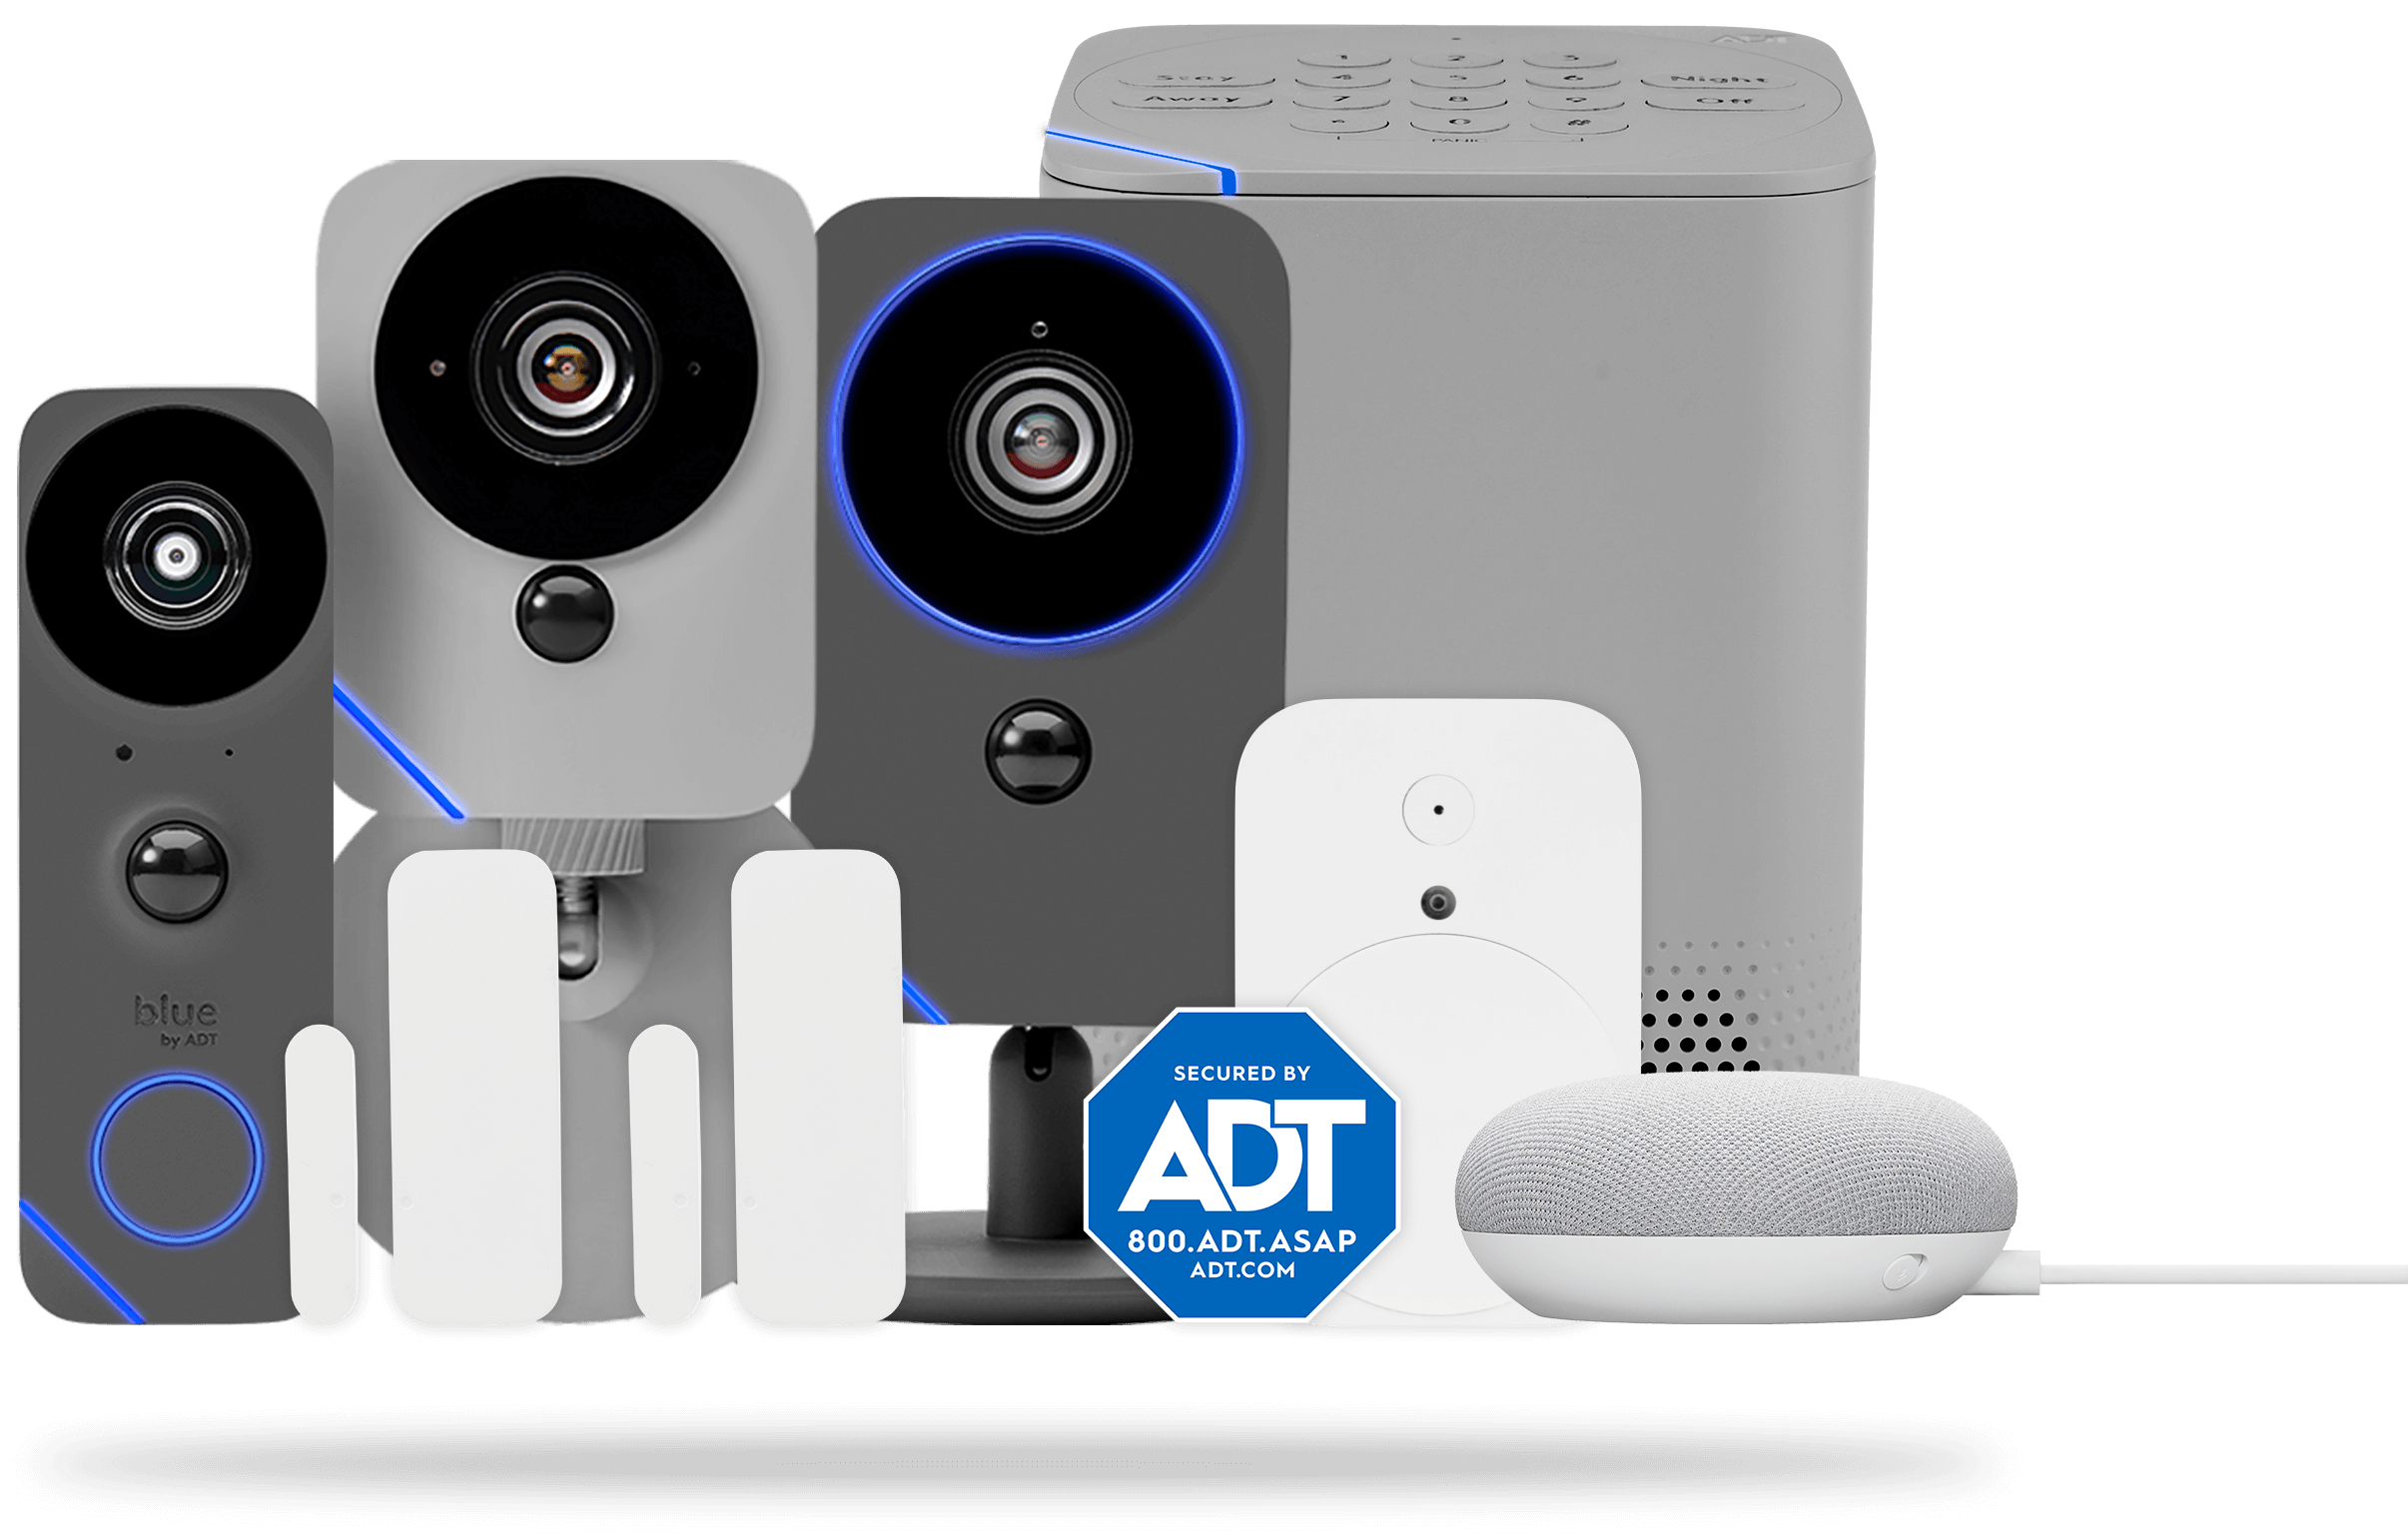 Blue by ADT home security systems